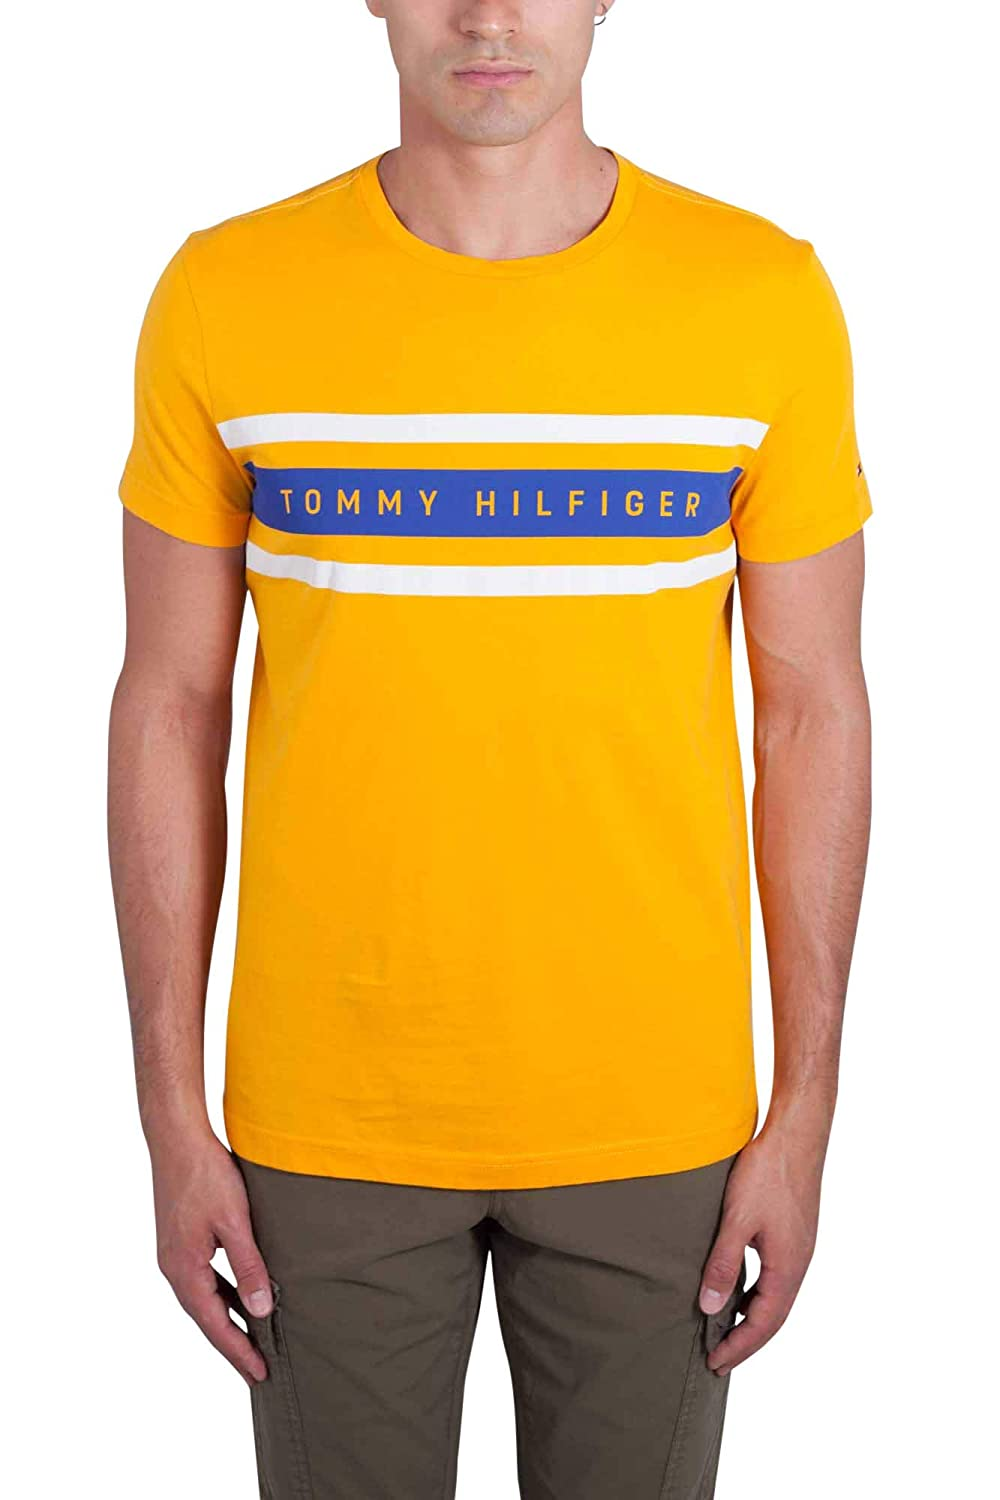 4560a7f9 Tommy Hilfiger Men's T-Shirt Yellow Yellow One Size: Amazon.co.uk: Clothing